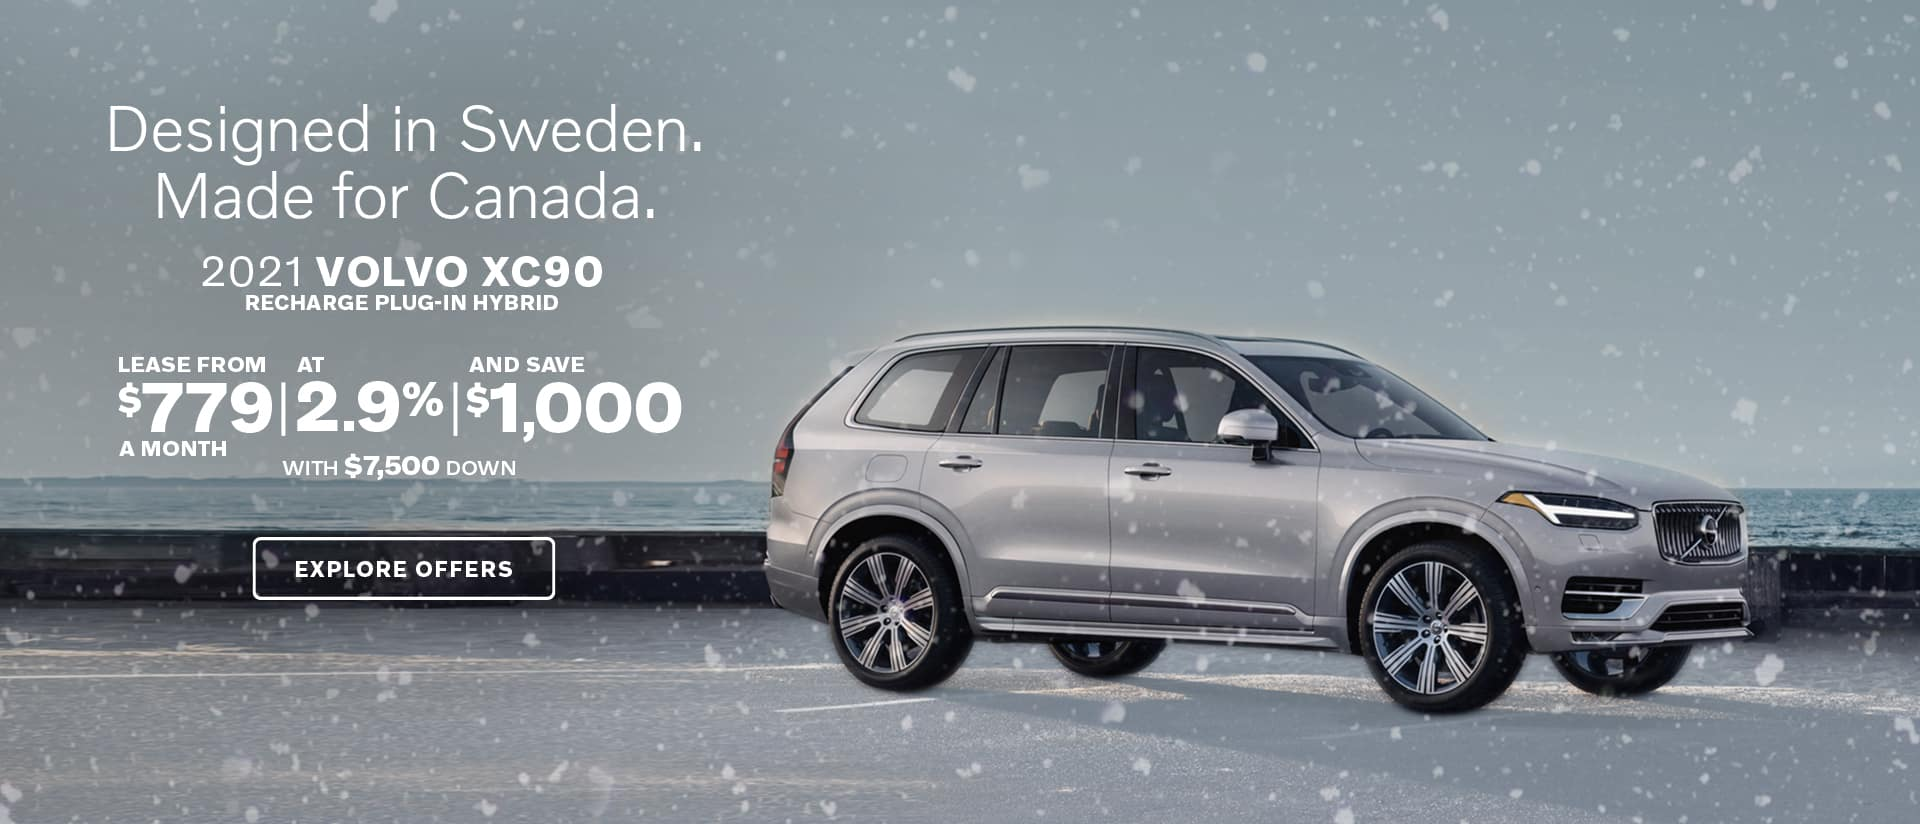 XC90 in the snow.